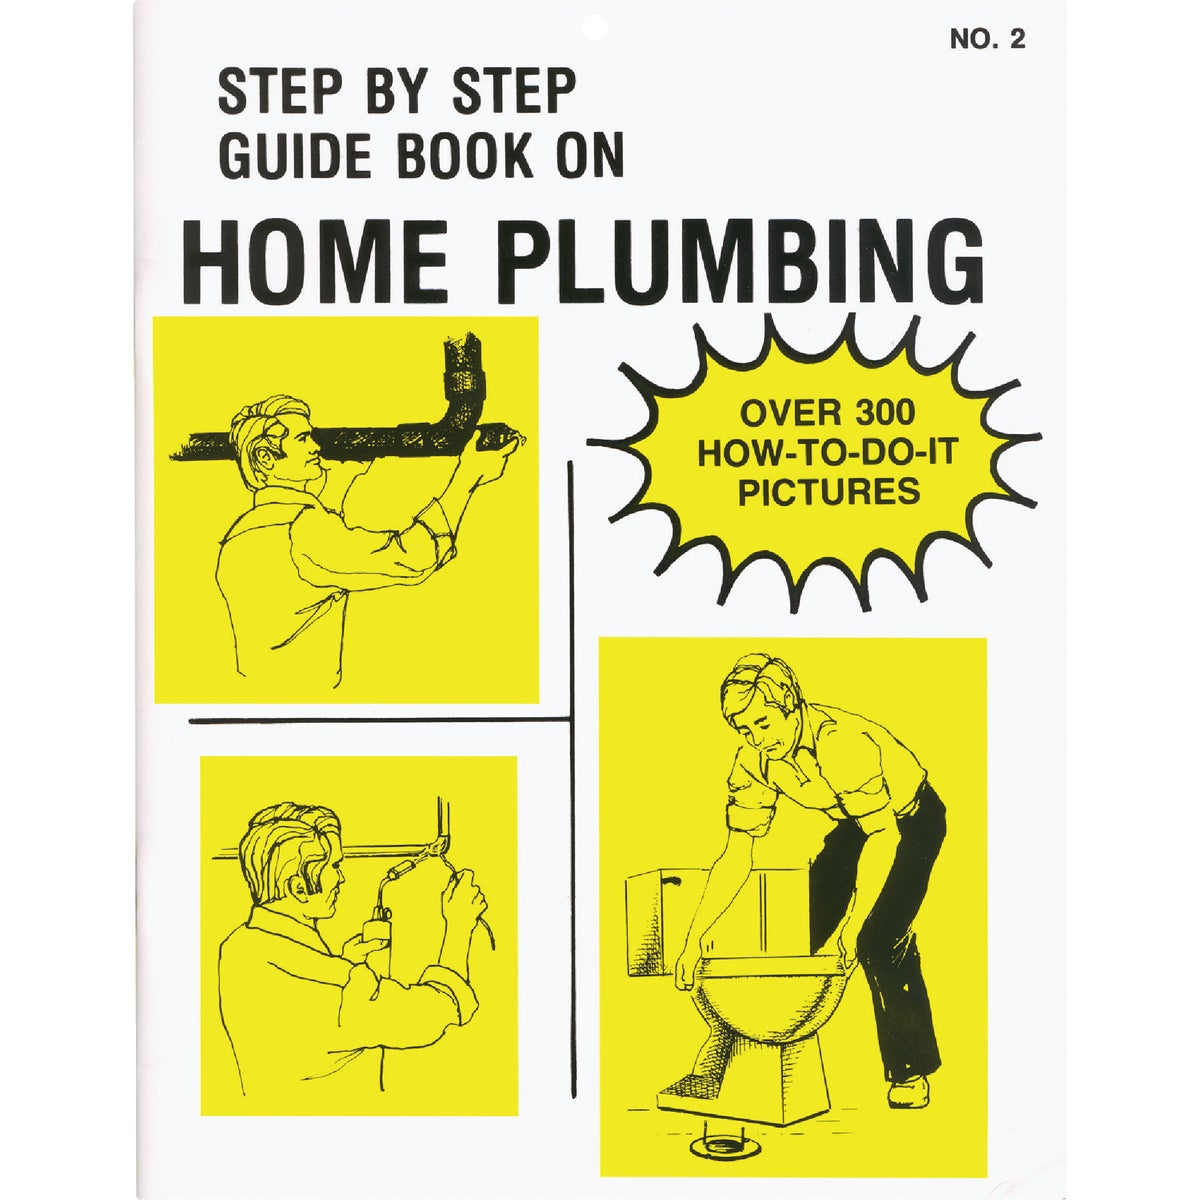 HOME PLUMBING BOOK - 2 by Step By Step Guide